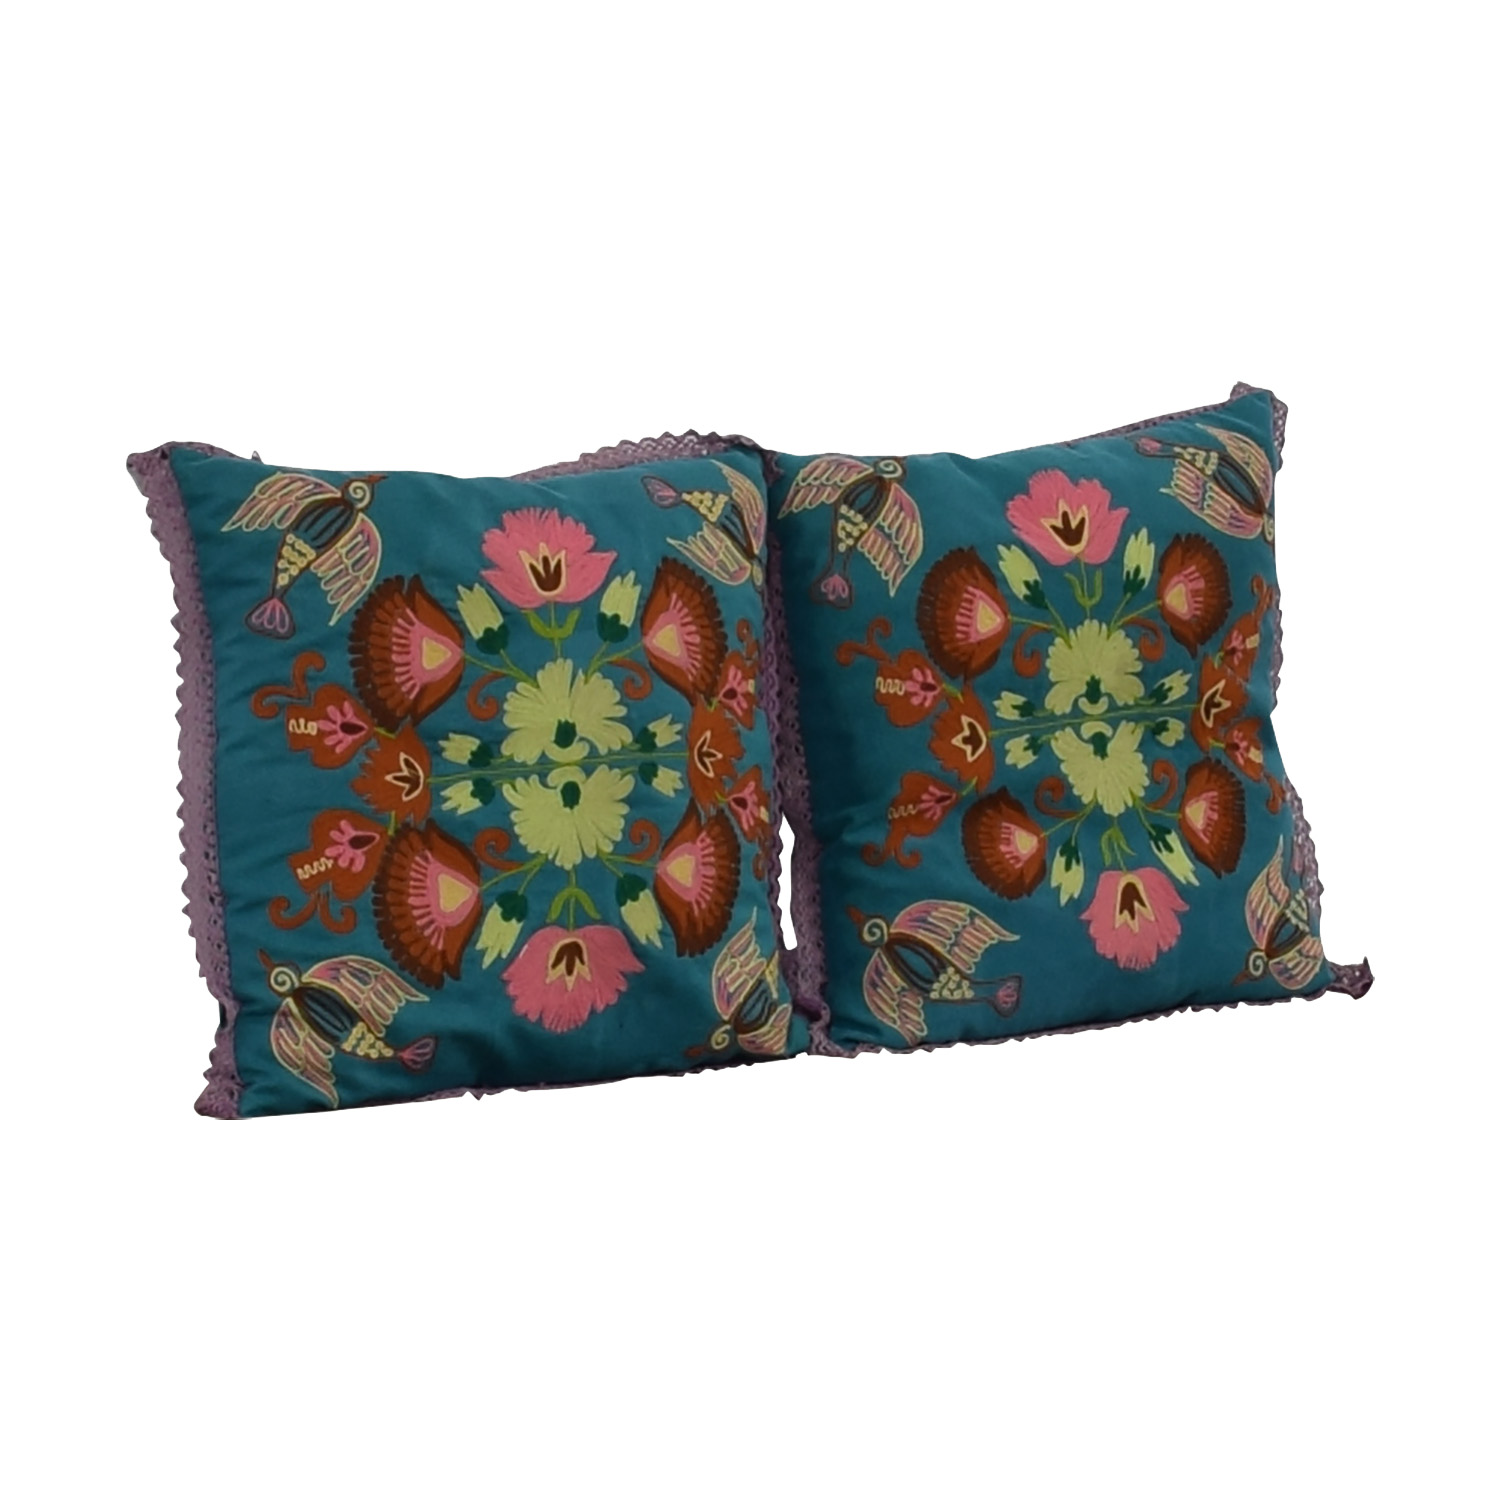 Wayfair Wayfair Multi-Colored Toss Pillows on sale